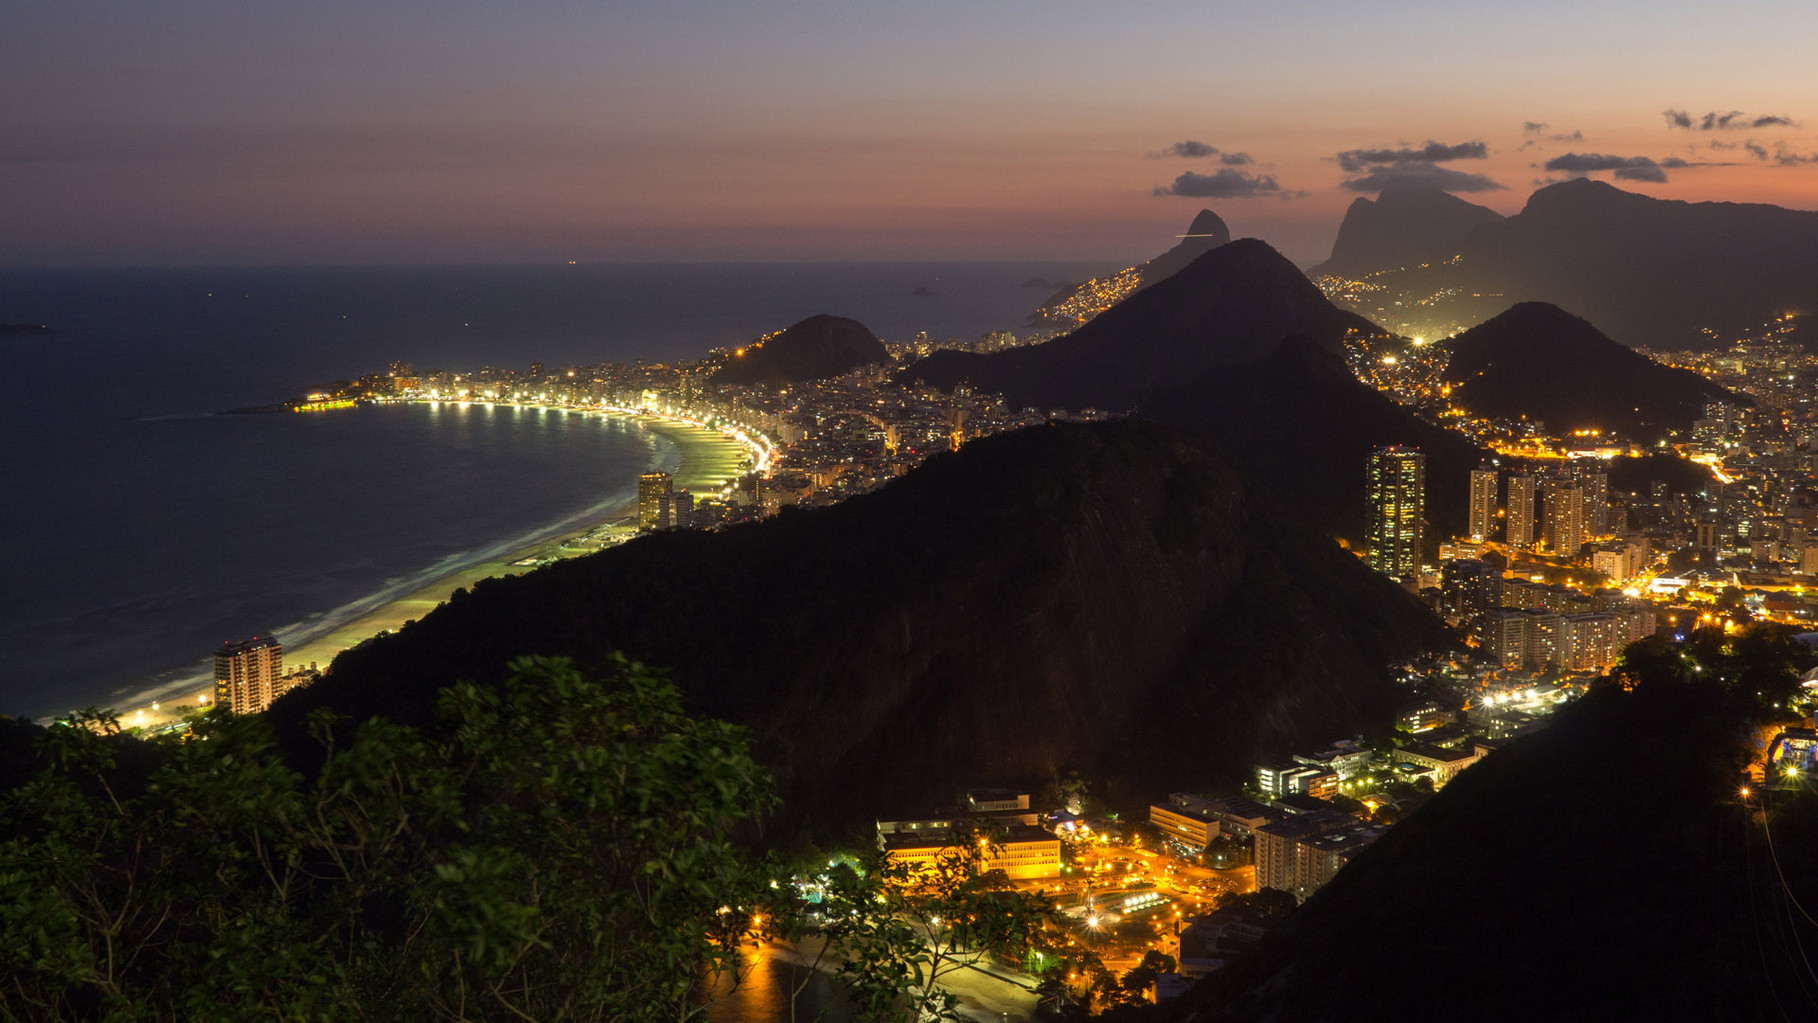 Copacabana by night, panoramic view from Sugarloaf